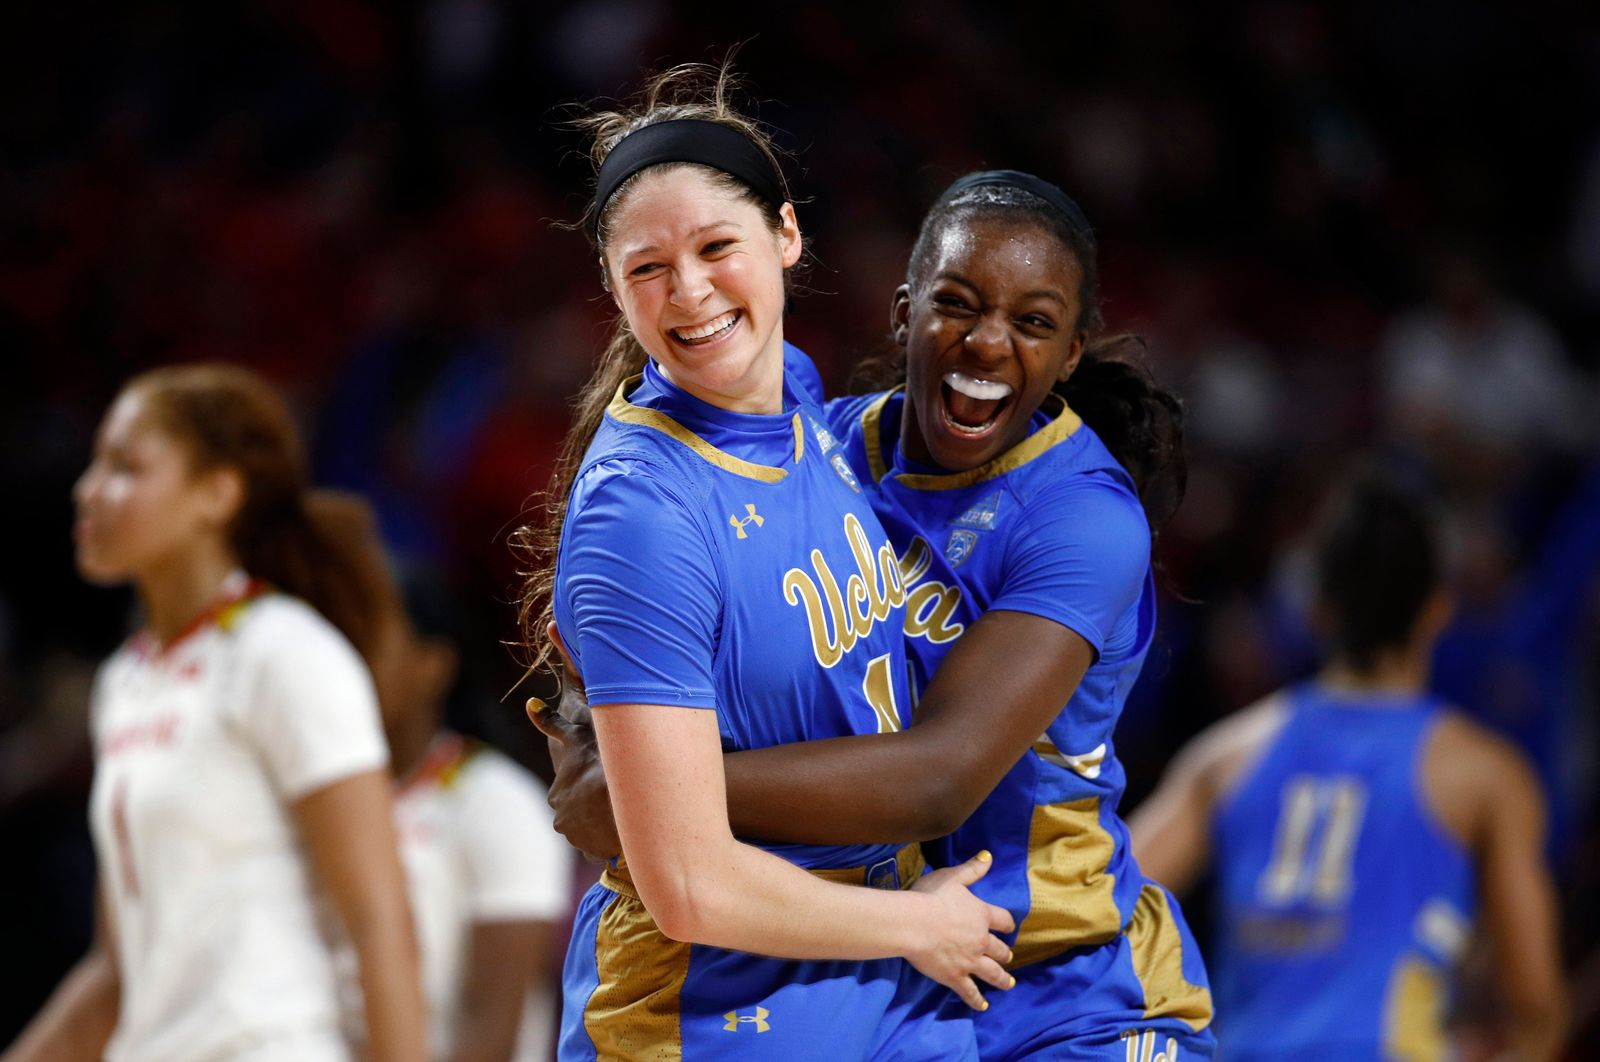 UCLA guard Lindsey Corsaro, left, and forward Michaela Onyenwere celebrate after a second-round game against Maryland in the NCAA women's college basketball tournament Monday, March 25, 2019, in College Park, Md. UCLA won 85-80. (AP Photo/Patrick Semansky)